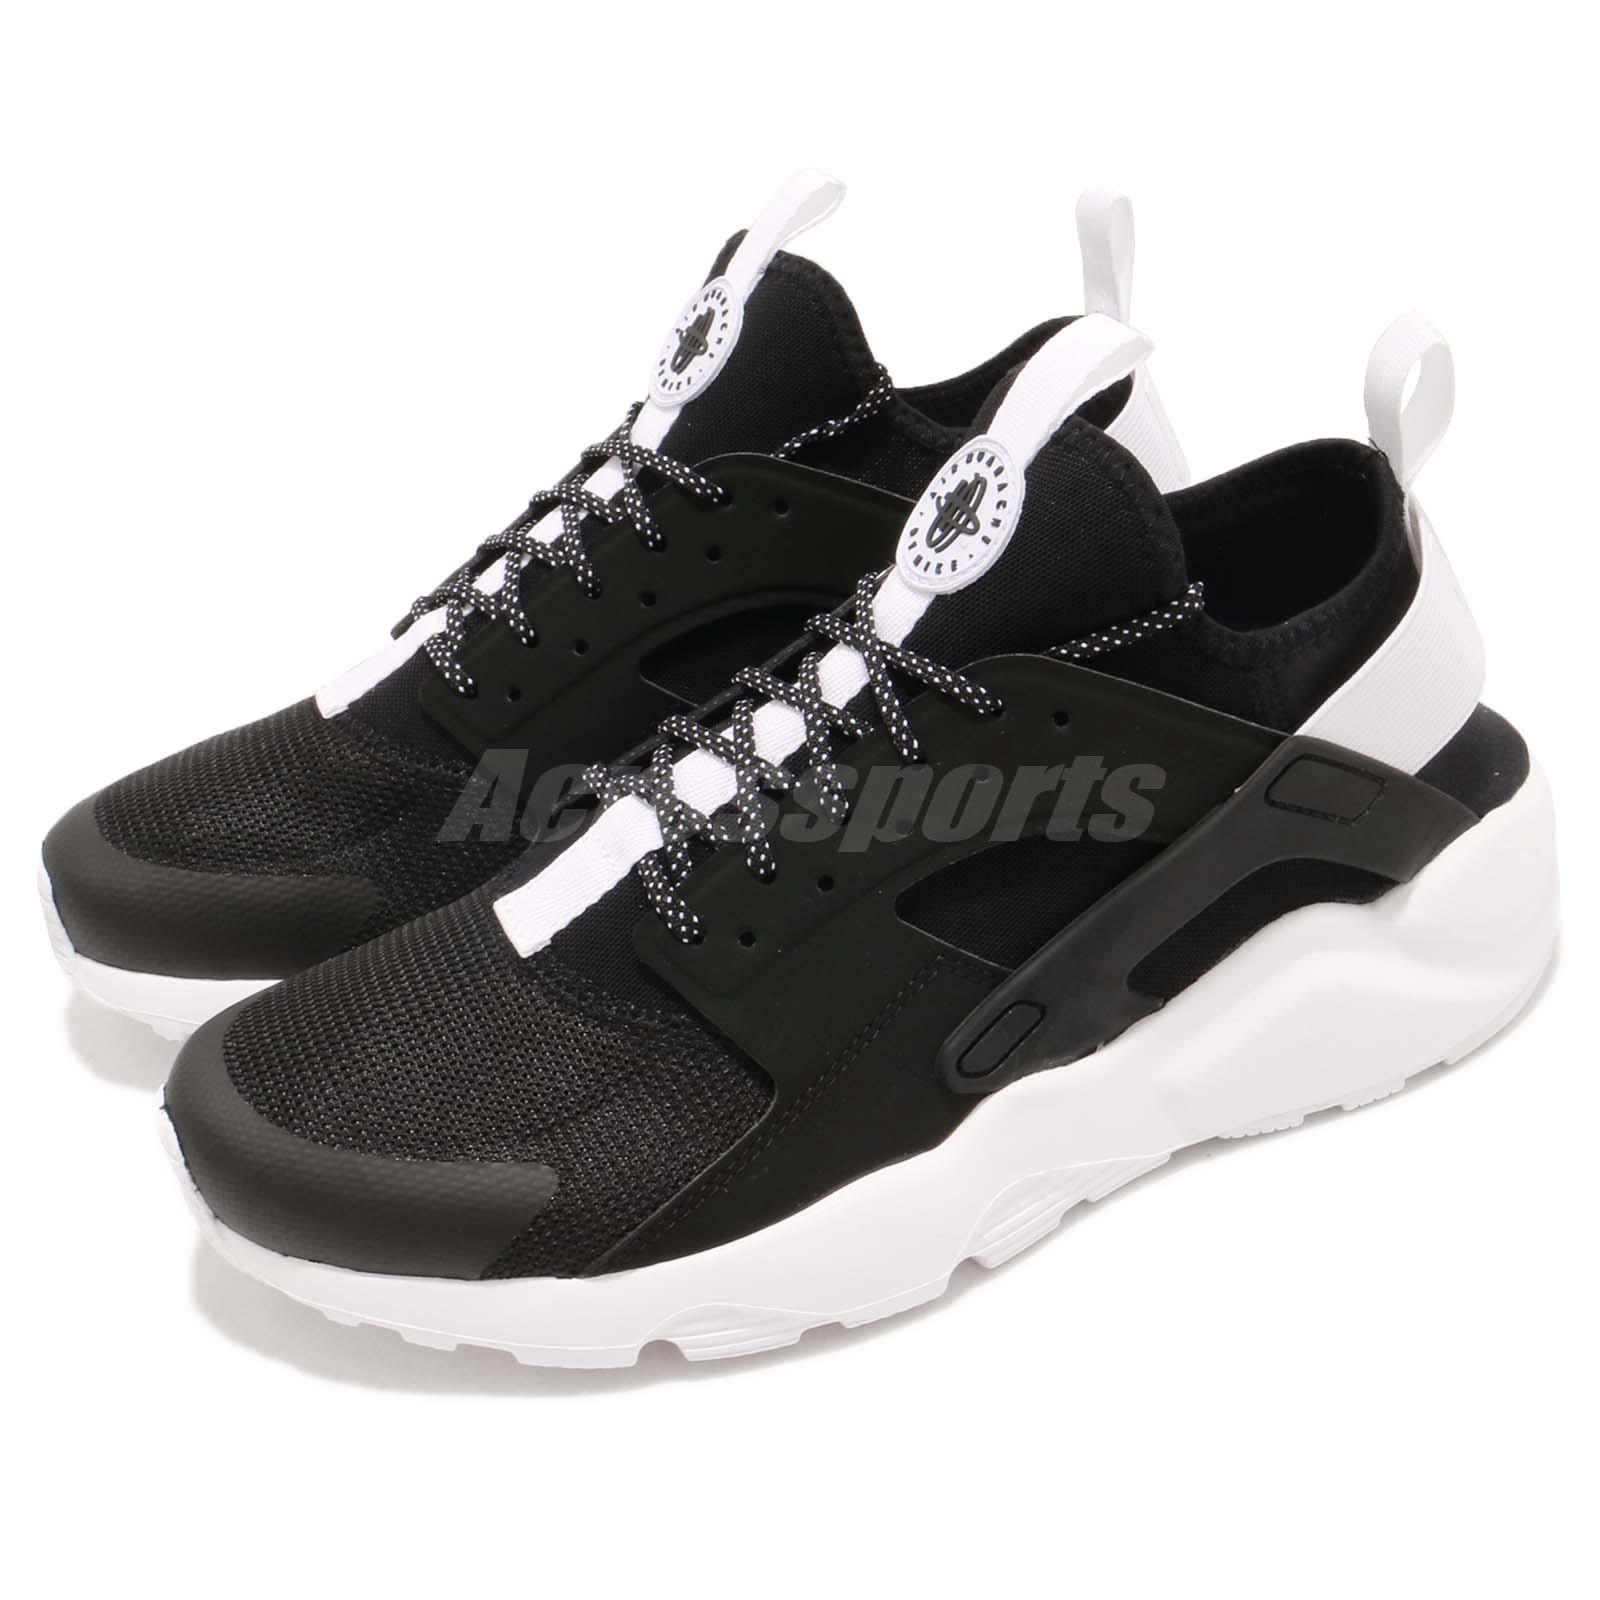 970ff710cfb79 Details about Nike Air Huarache Run Ultra Black White Men Running Shoes  Sneakers 819685-018